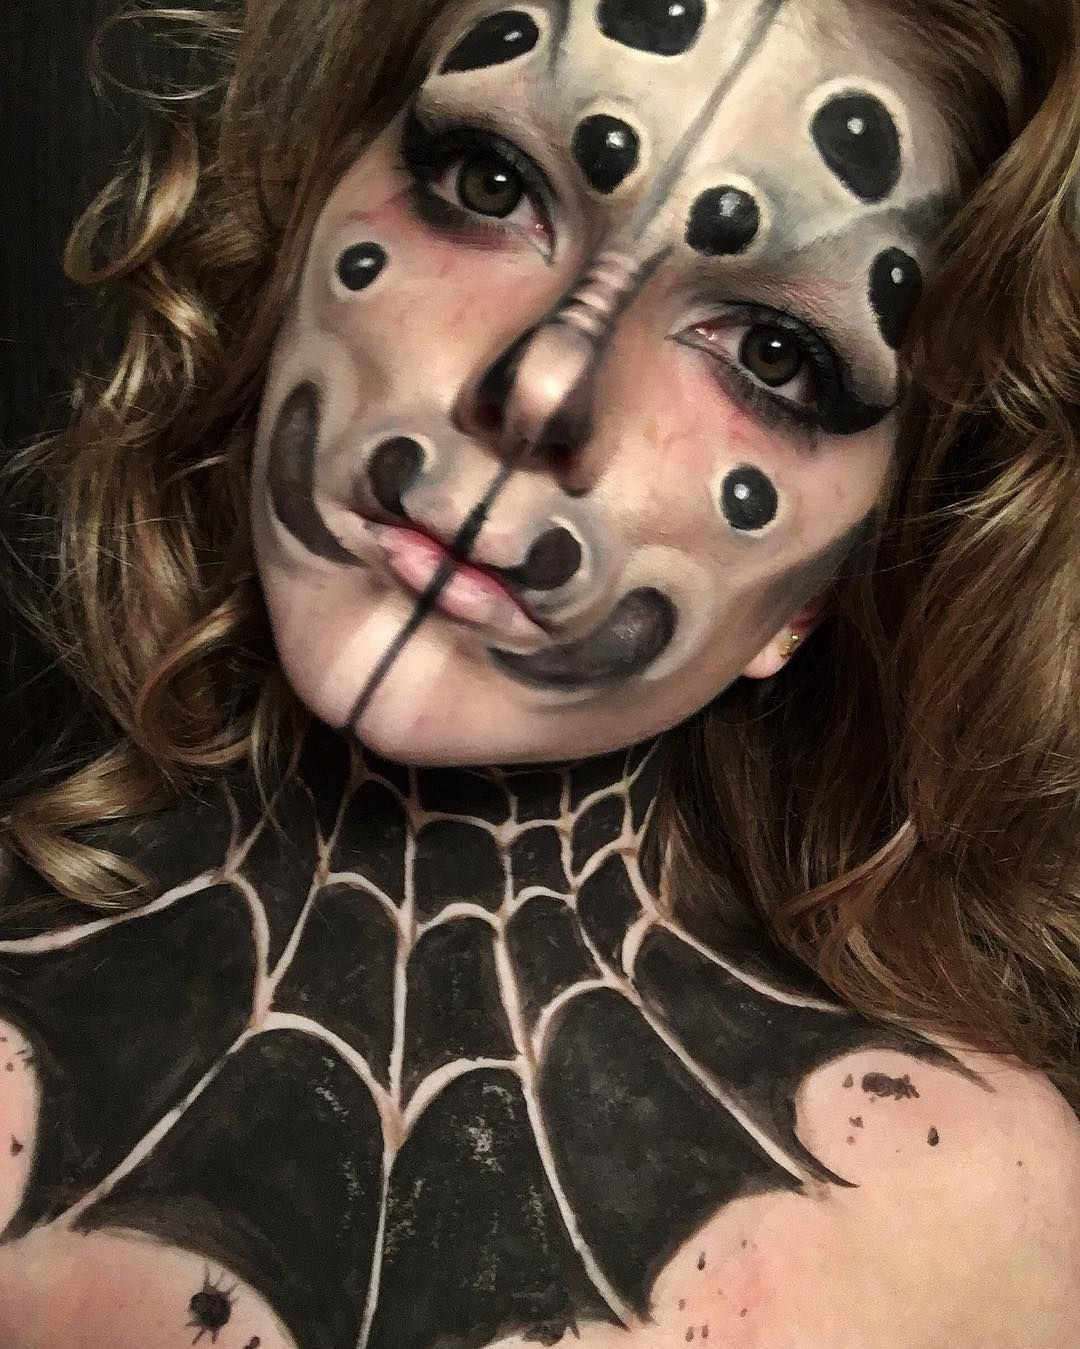 Pin By Wendy Washburn On Spider Queen Costume | Pinterest | Makeup Things Phobias And Scary